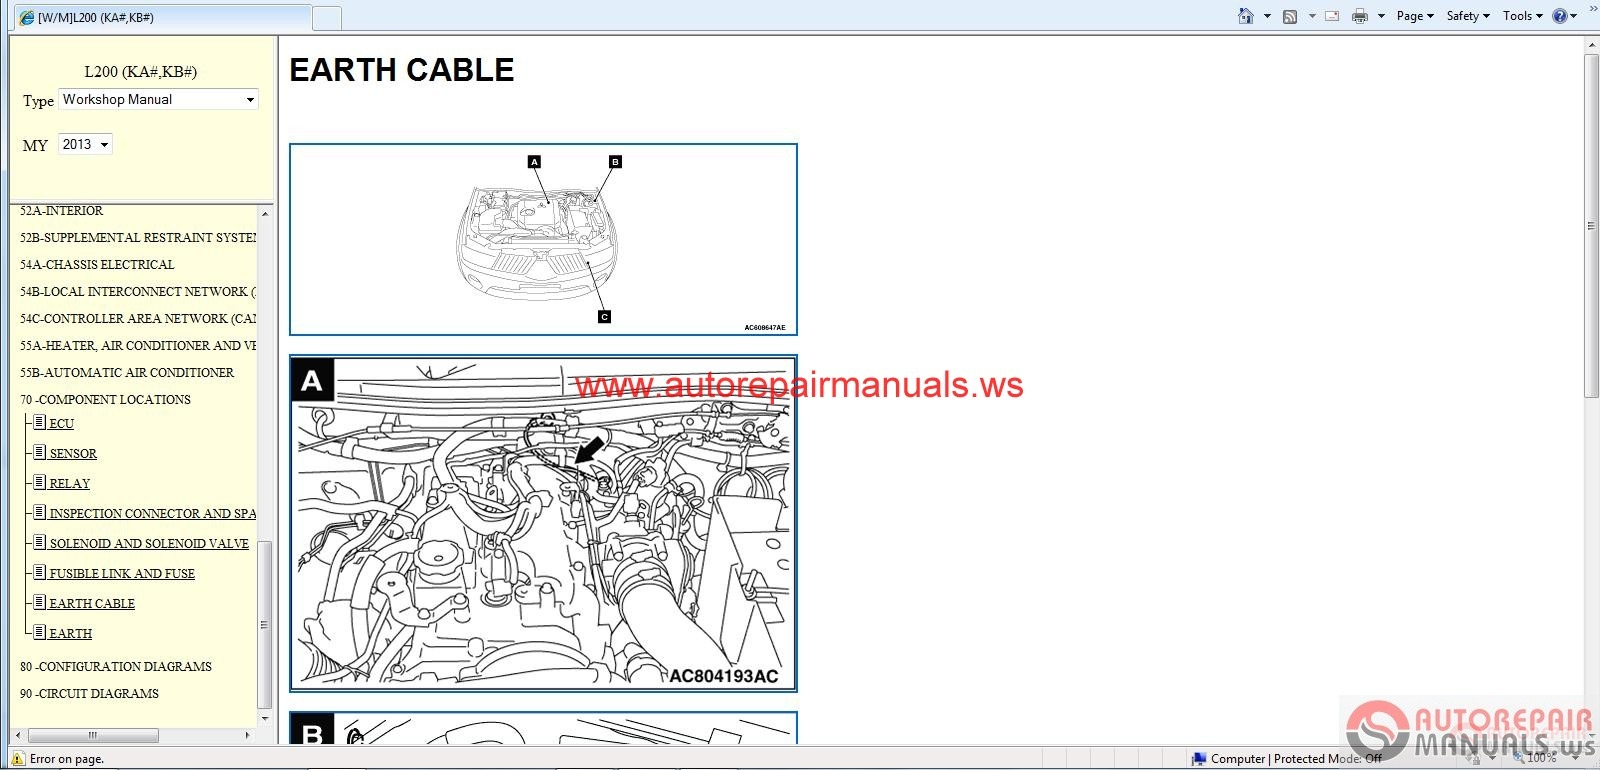 thermocore split system wiring diagram ansul system wiring heat pump wiring diagram schematic